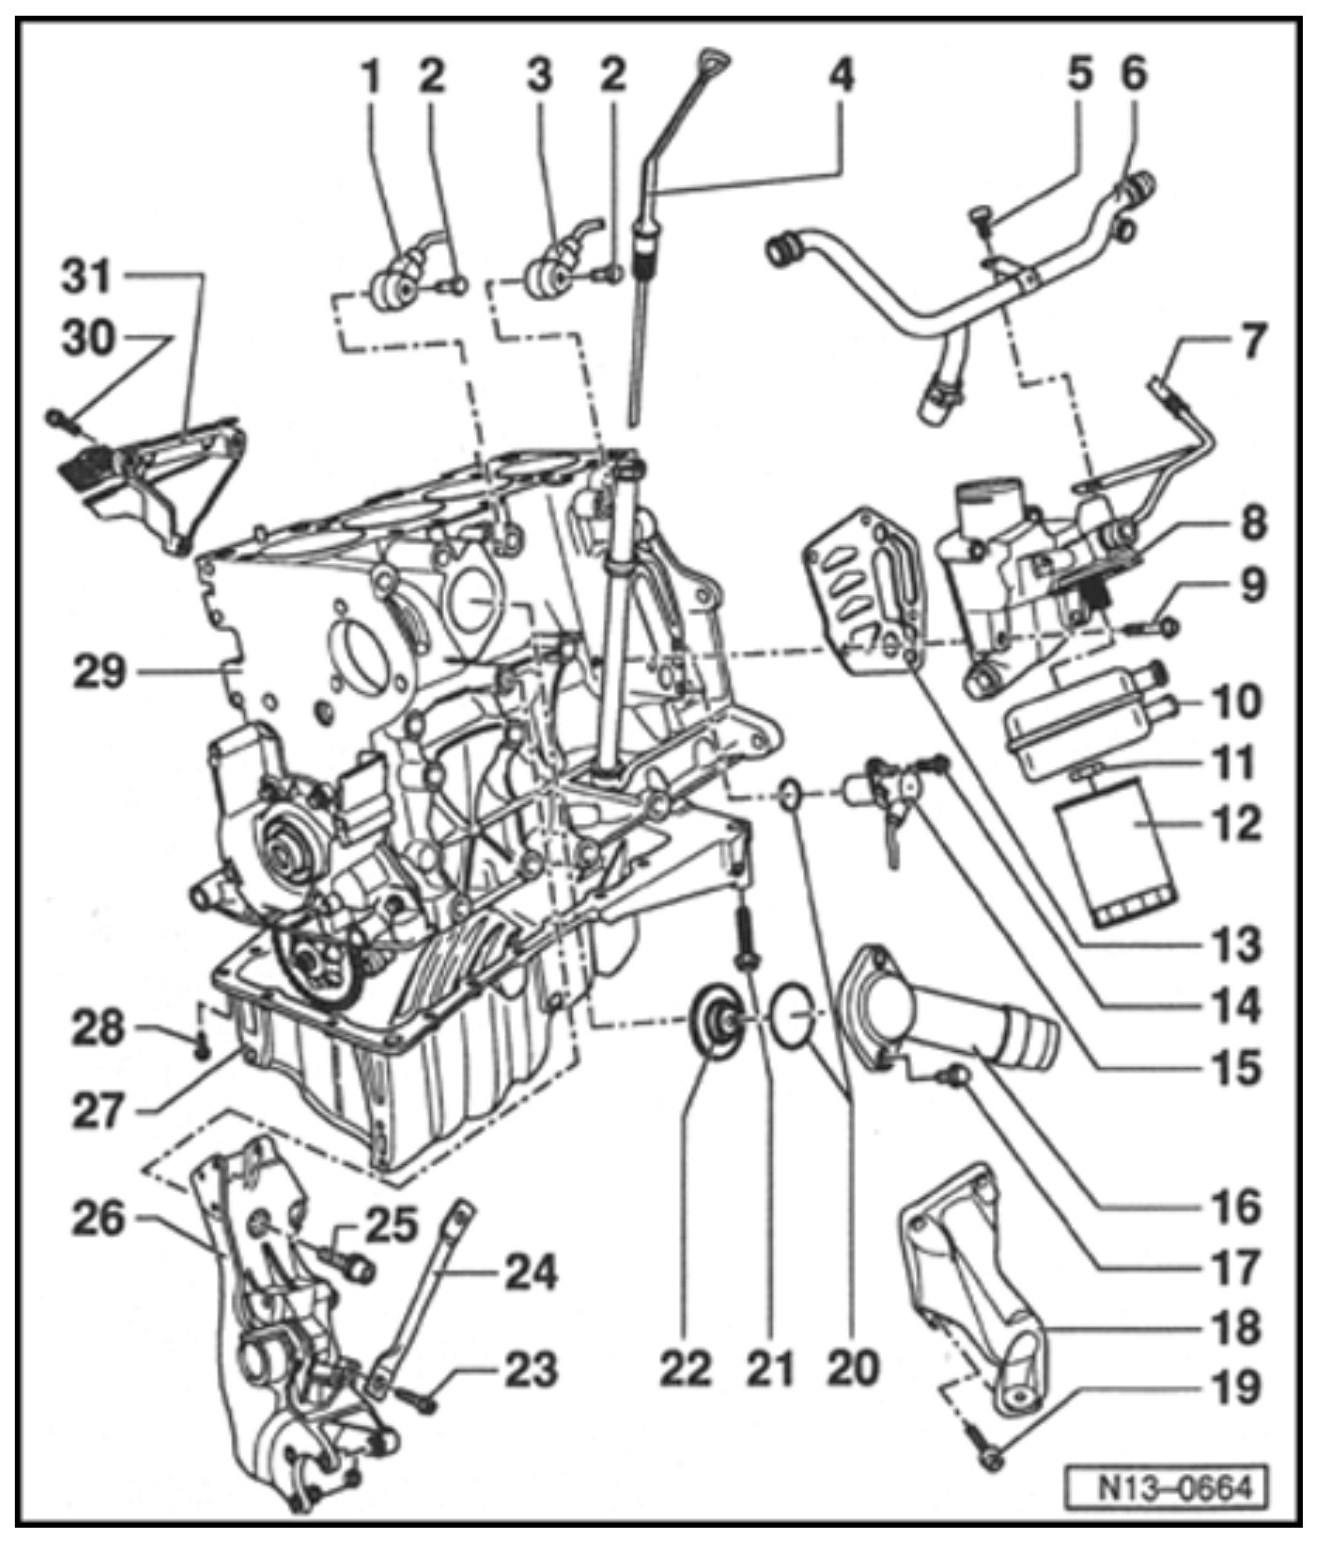 2003 vw jetta 2 0 thermostat location